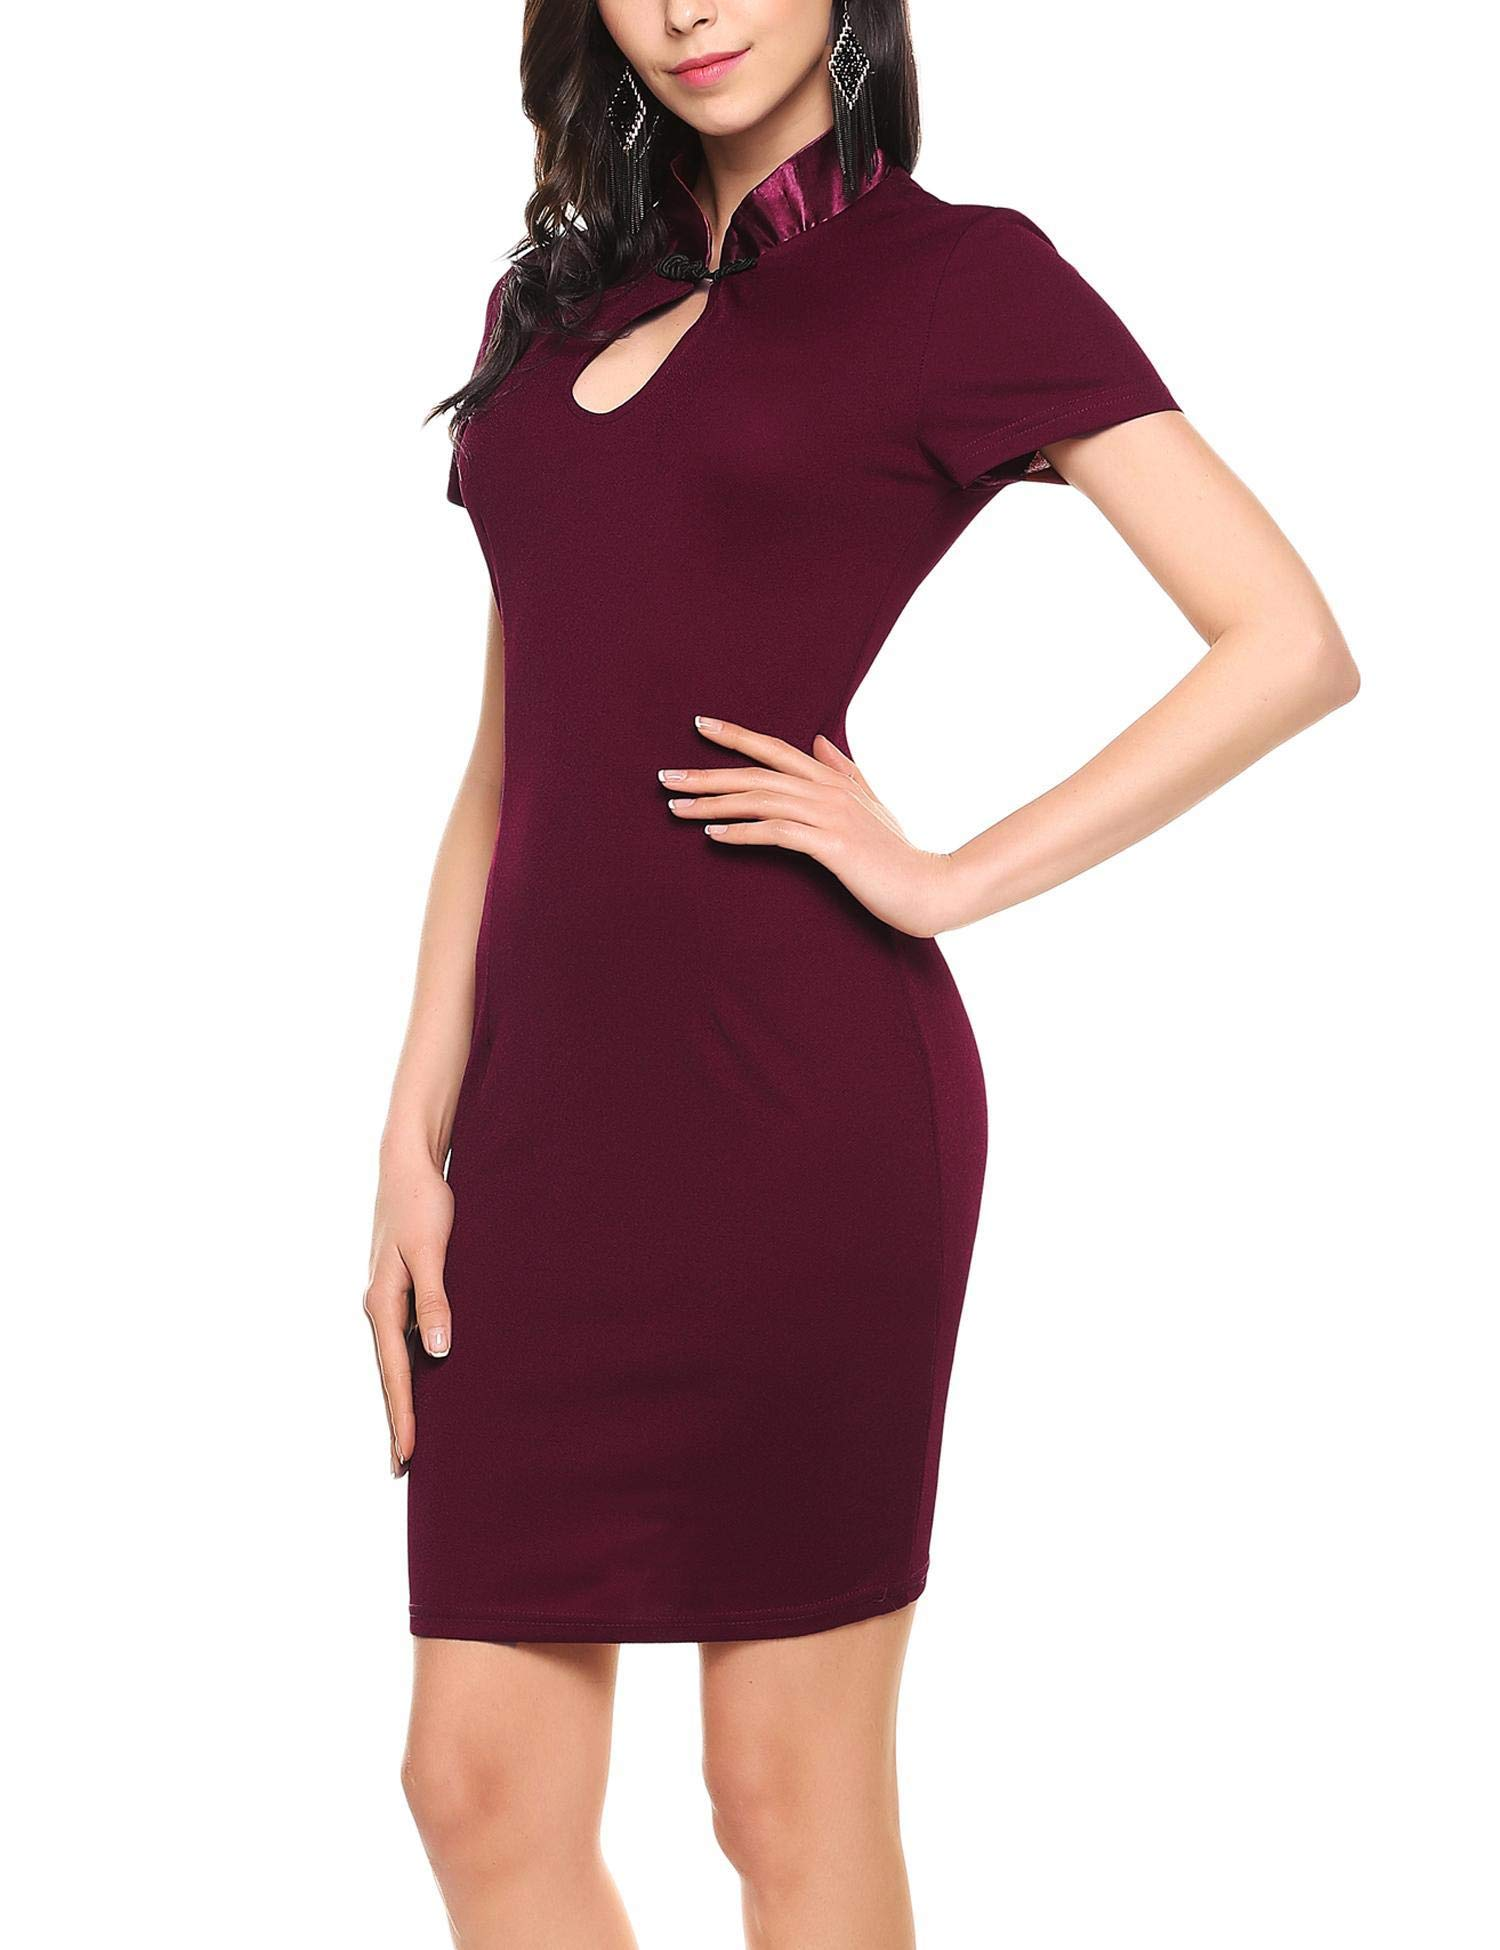 ANGVNS Women's Sexy Business Bodycon Pencil Formal Keyhole Work Dress